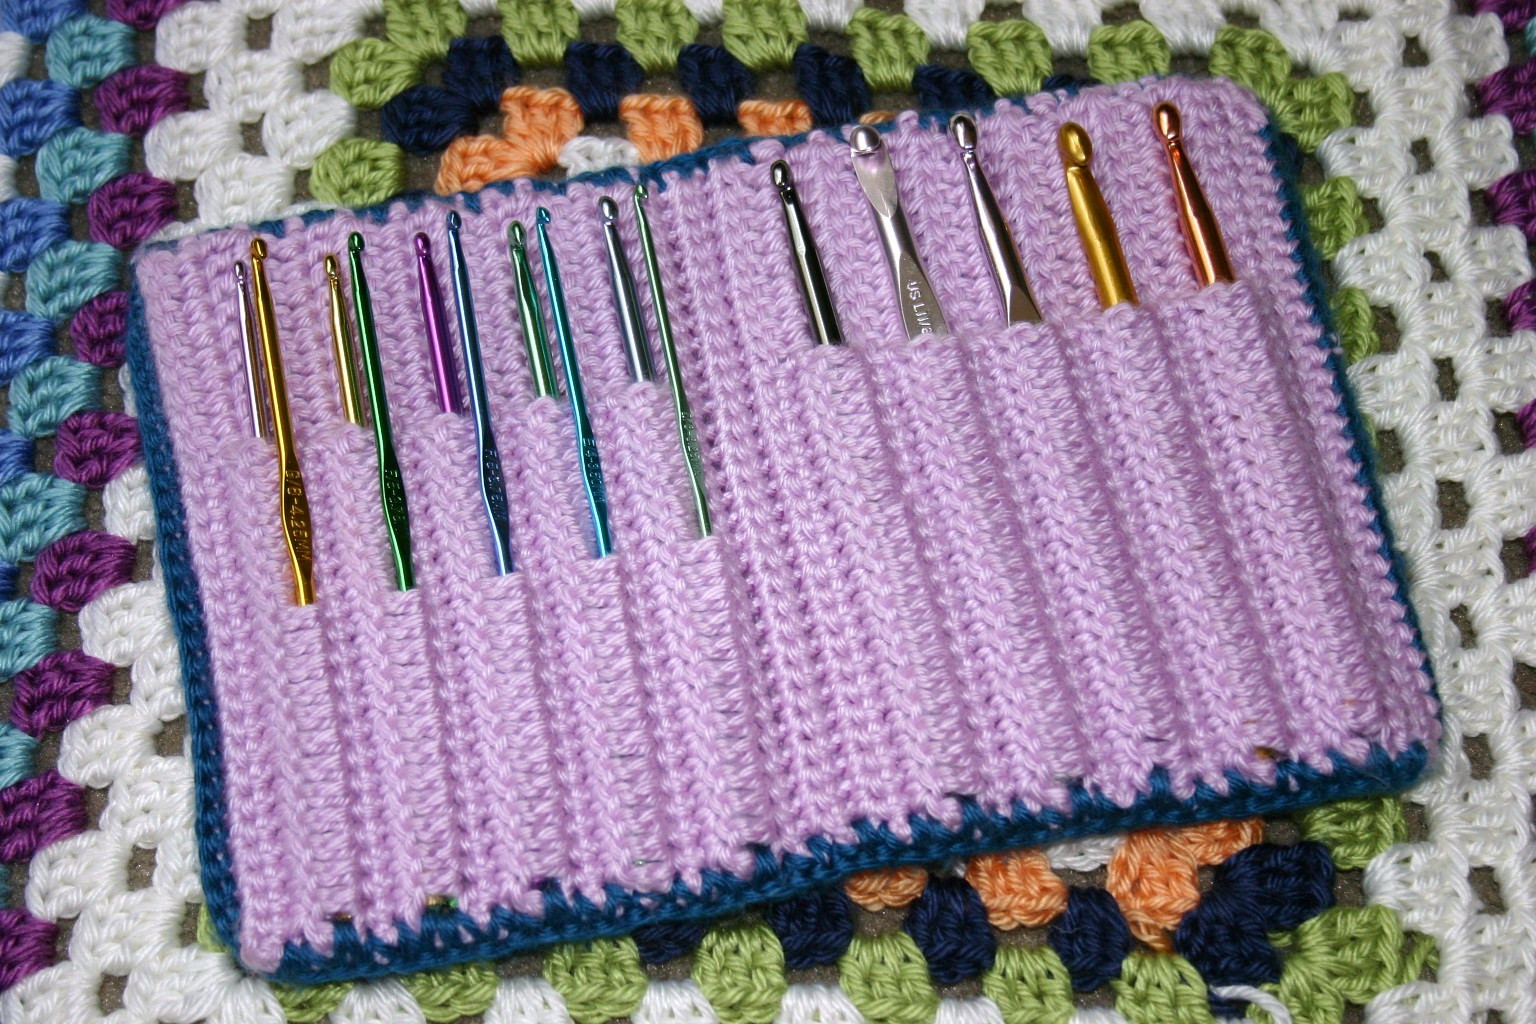 Crochet Hook organizer Awesome the Oxford Family Day 3 Of Brilliant 43 Photos Crochet Hook organizer